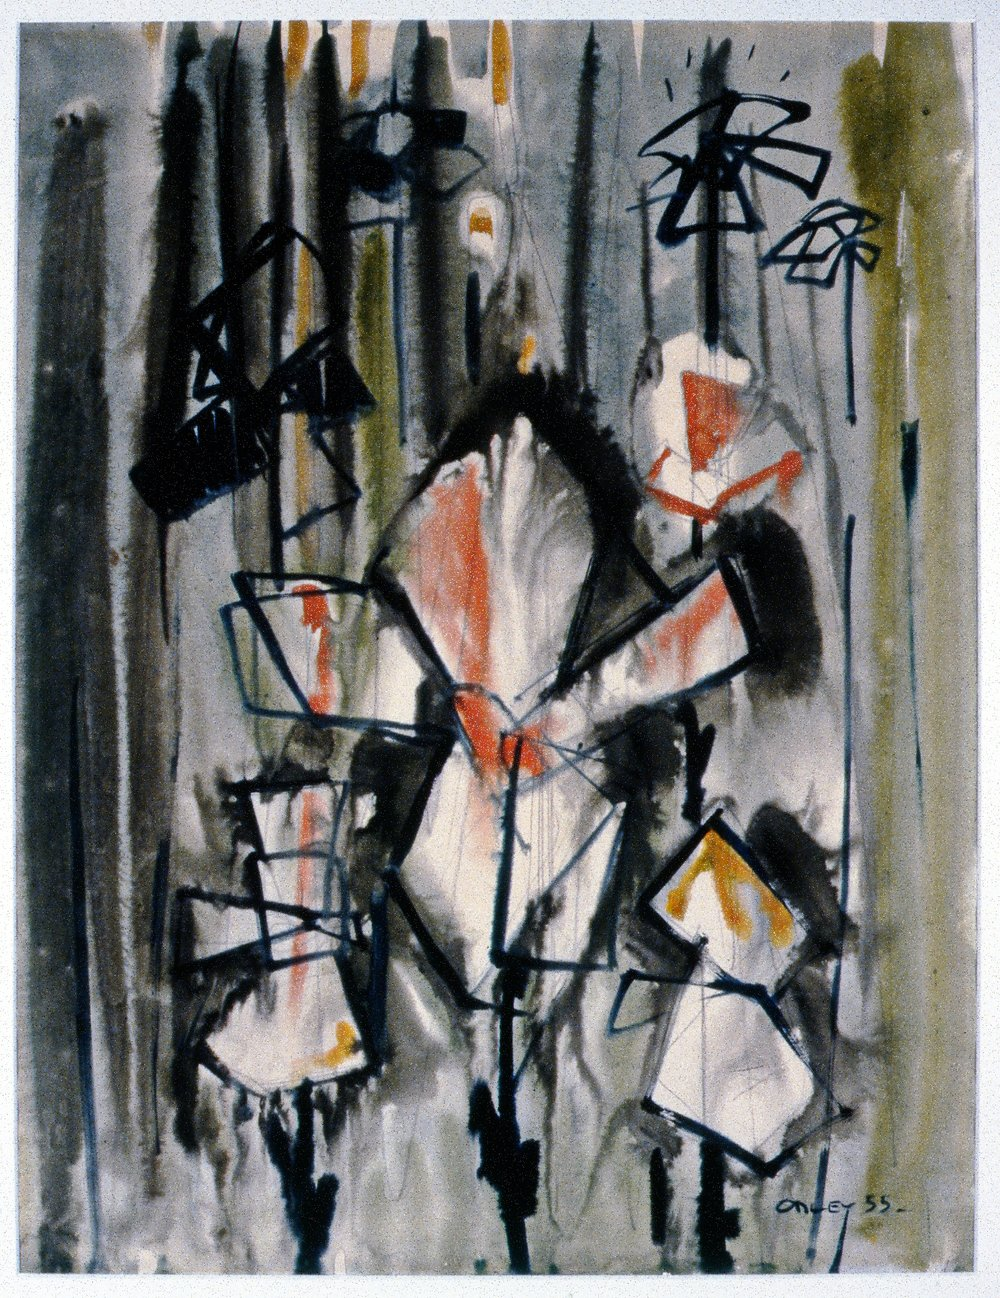 Untitled, 1955, Toni Onley, painting, 34.3 cm x 50.8 cm, 2001.04.09. Gift of the Estate of Ethel & Maurice Joslin.